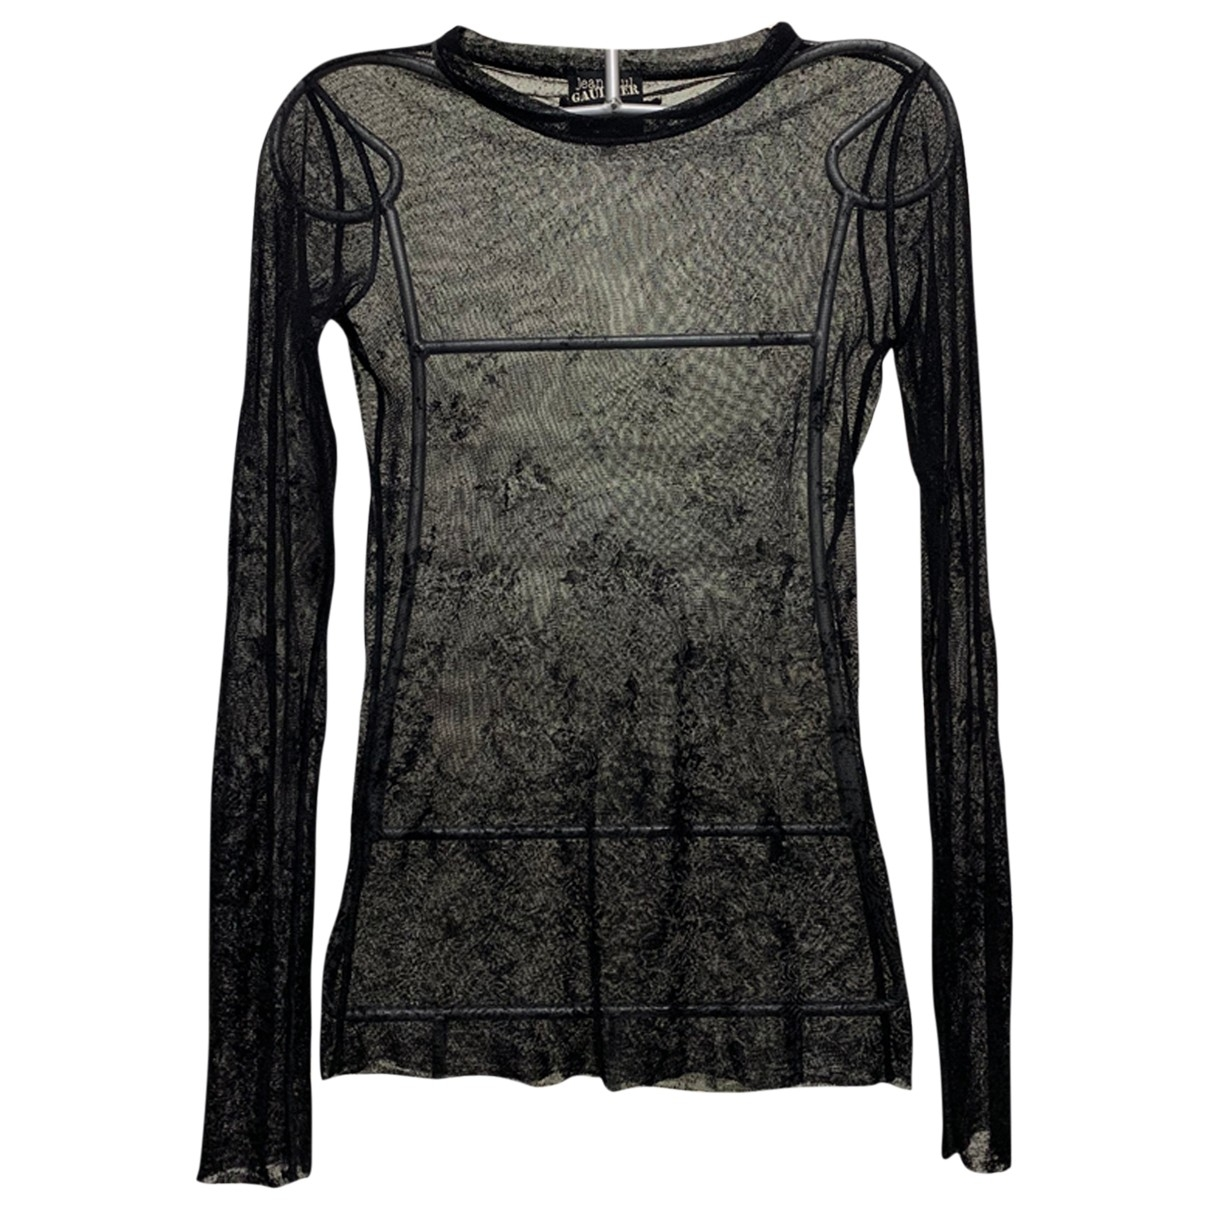 Jean Paul Gaultier \N Black  top for Women S International